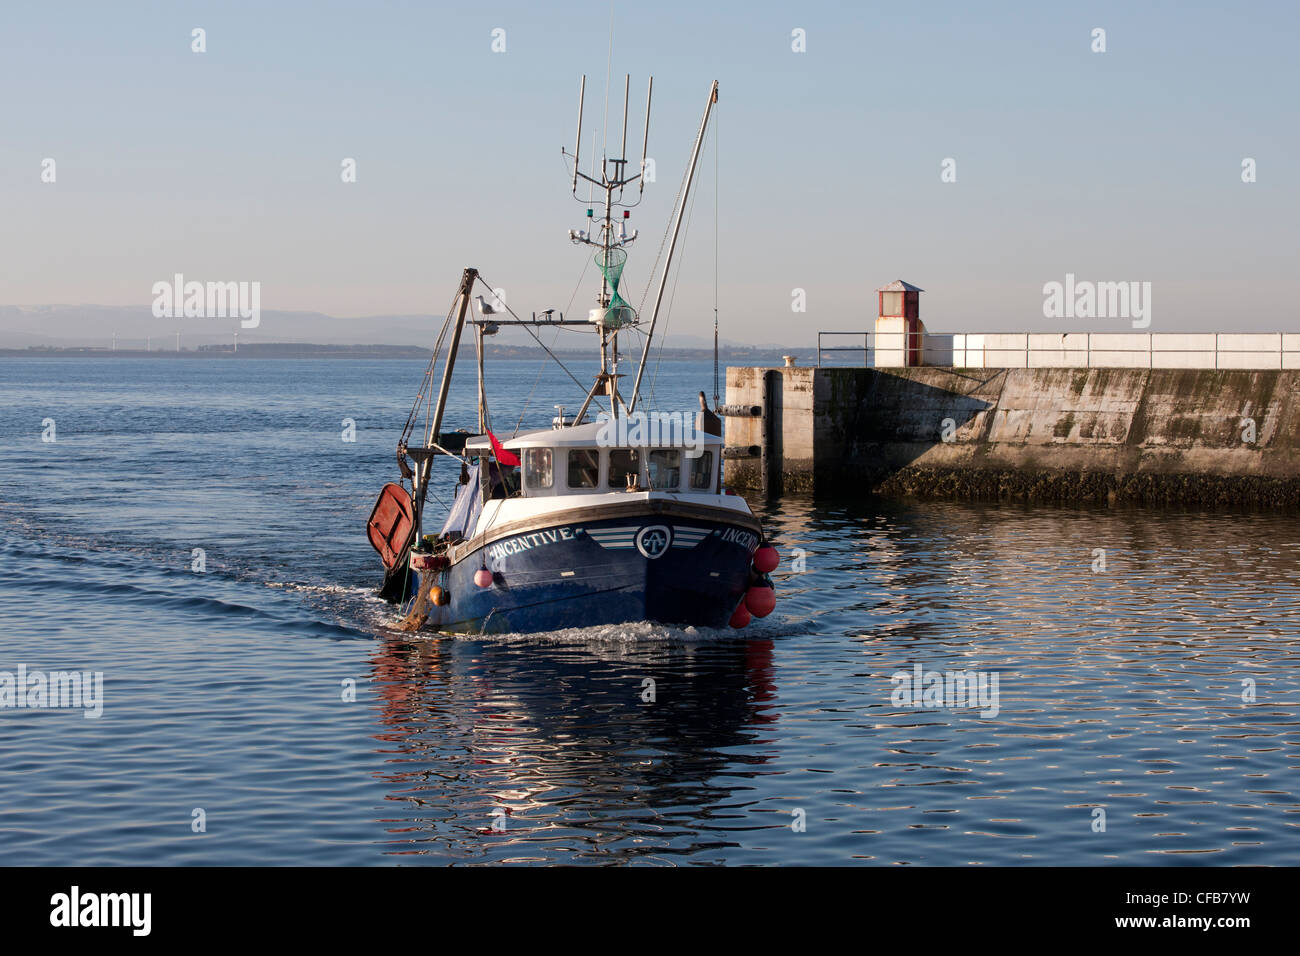 Inshore fishing 'Incentive' boat approach entrance to Burghead Harbour on the Moray Firth - Stock Image